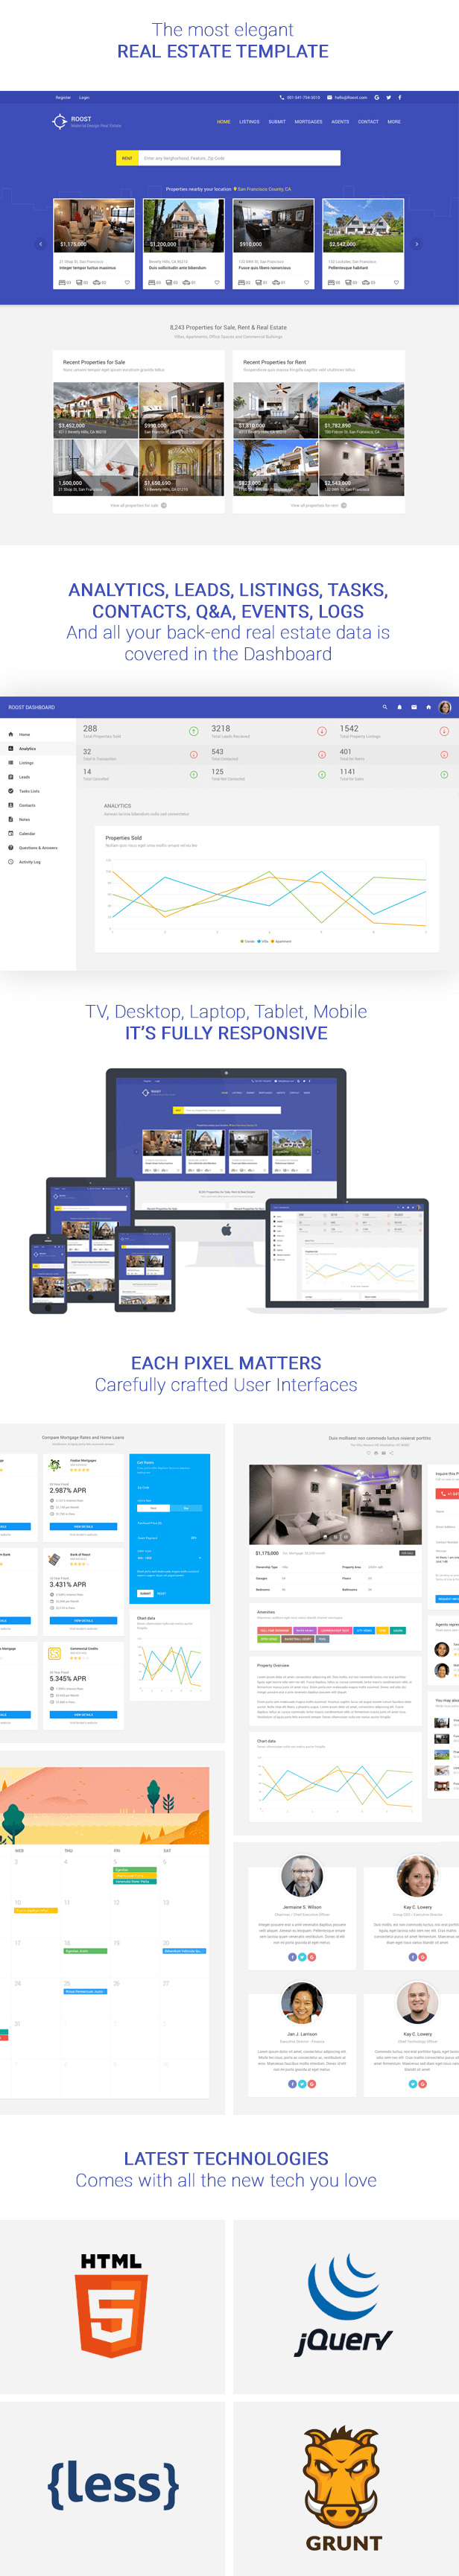 Roost Material Design Real Estate + Dashboard - 1